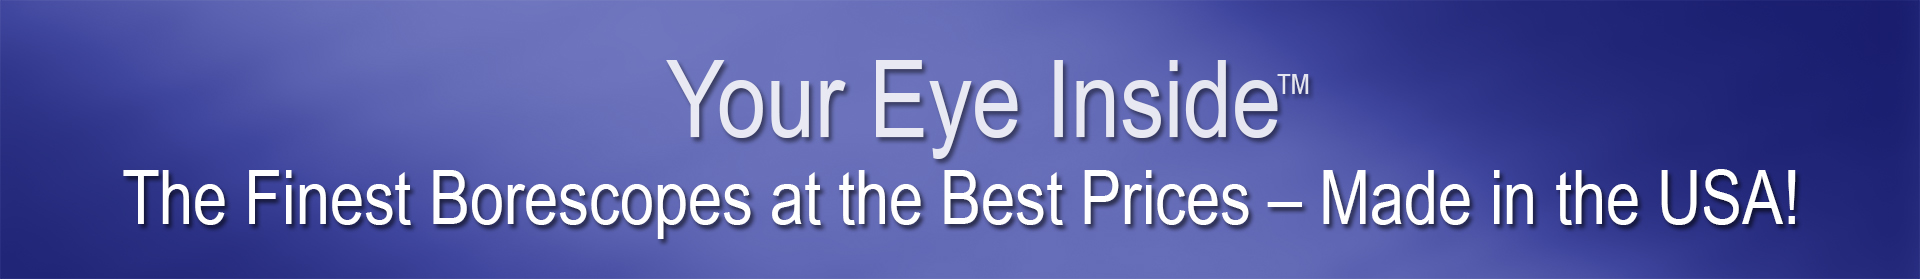 Your Eye Inside - The finest borescopes at the best prices - made in the USA